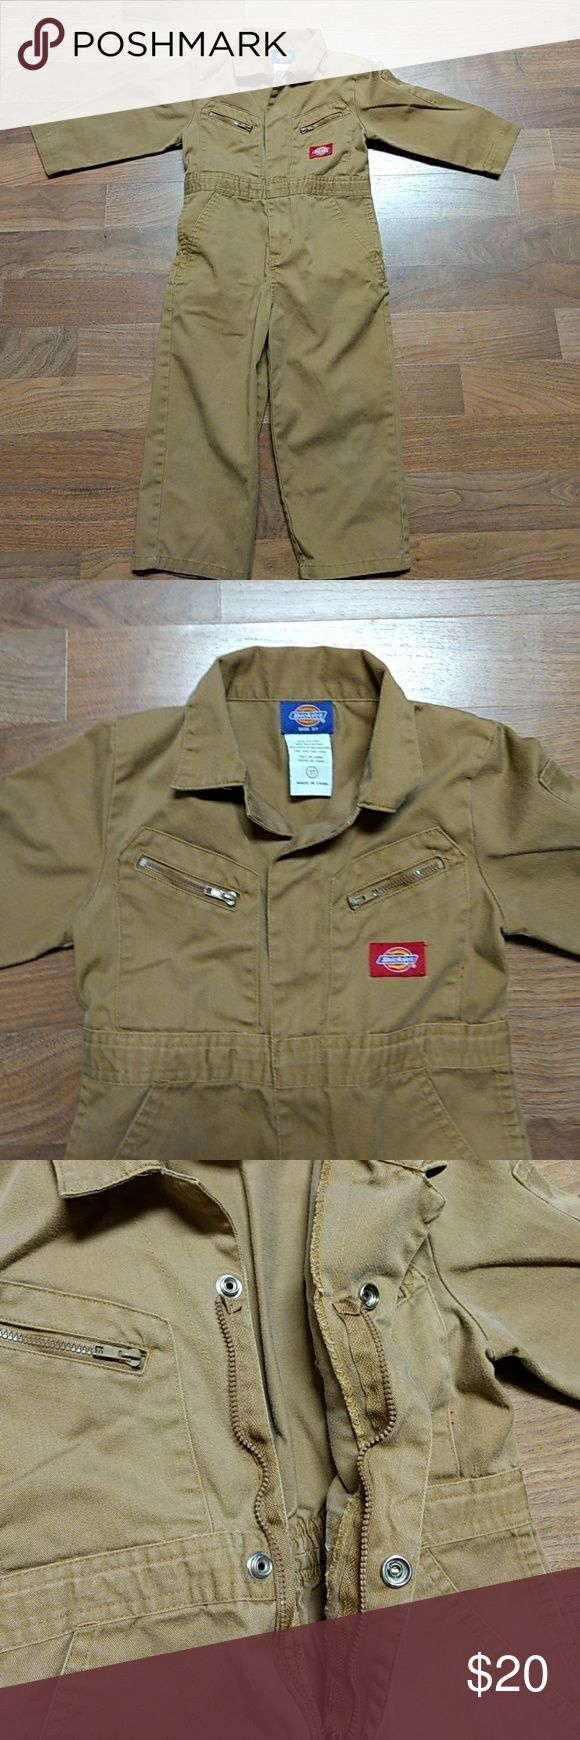 Dickies Toddler boys coveralls 3T Dickies Coveralls for 3T boy in like new condition 2 zipper pockets and 2 regular pockets on front these are  really cute, great for your little helper, comes from a smoke free home ☺️ any questions just ask Dickies Other